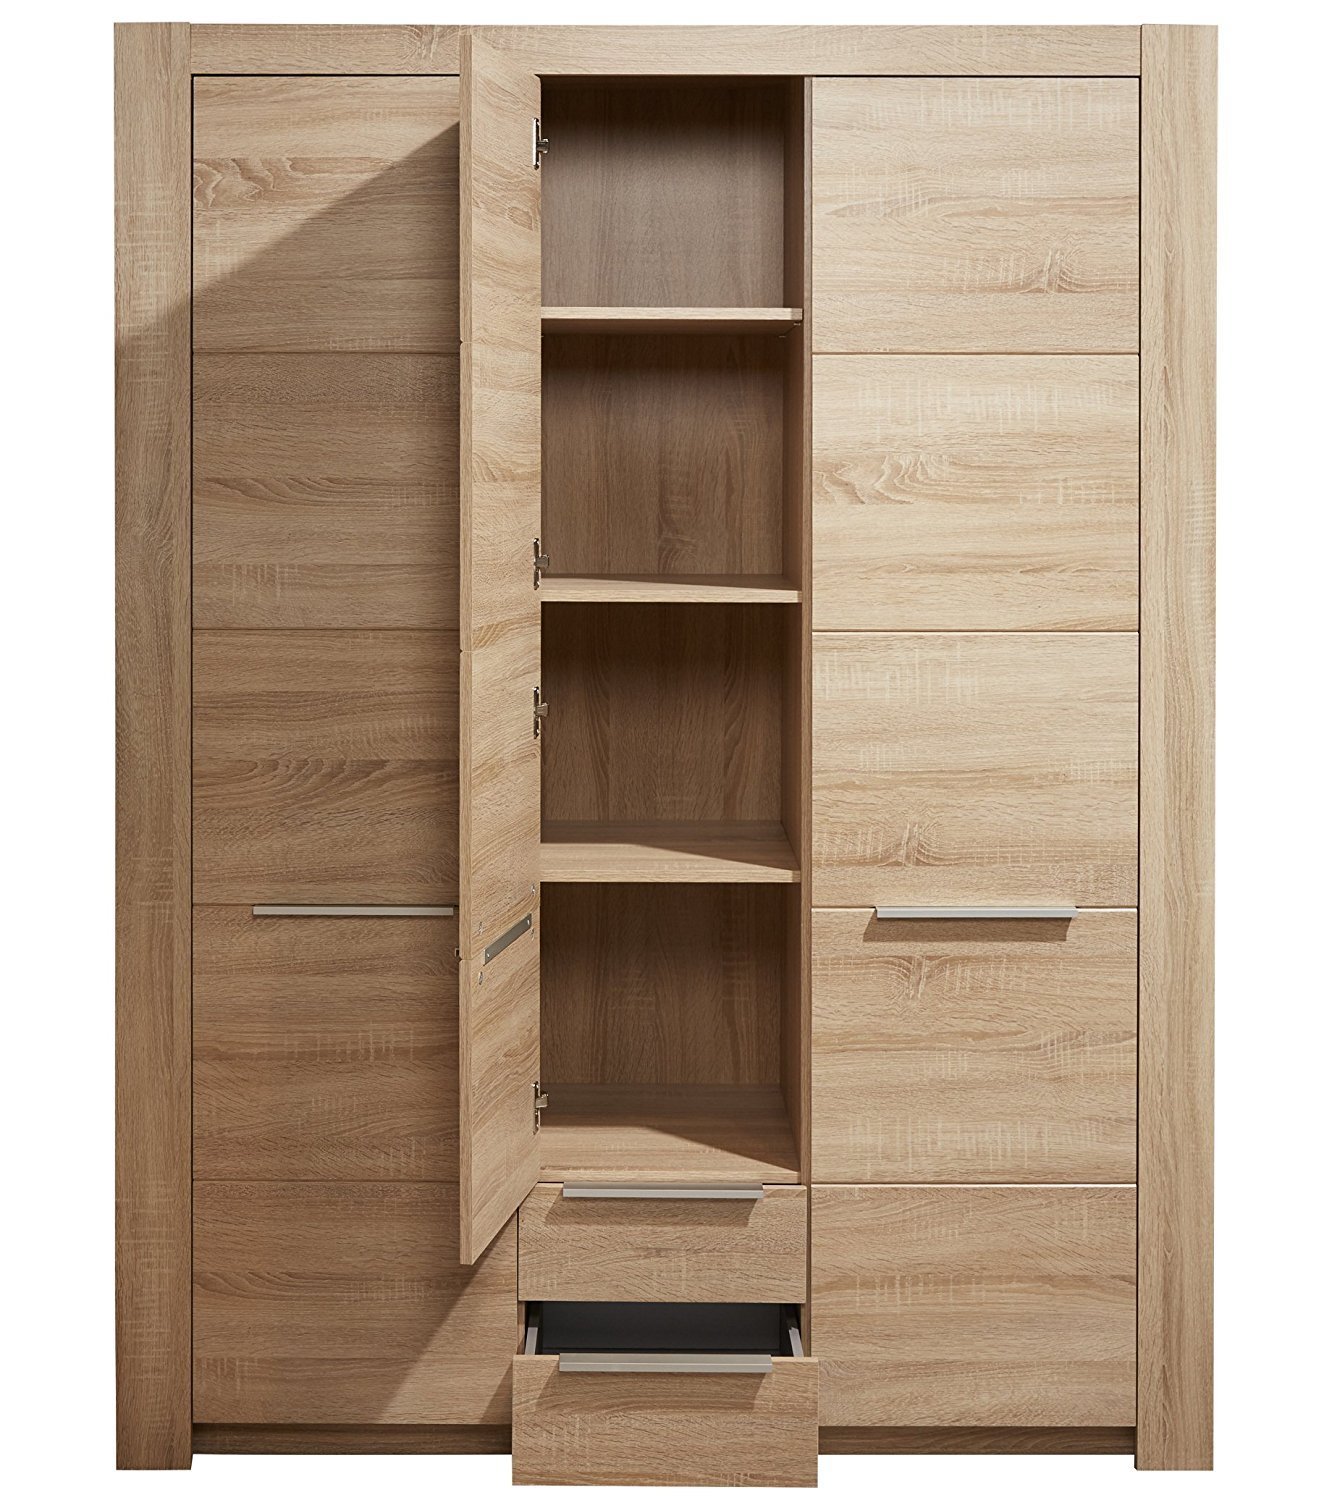 3trg kleiderschrank carlotta eiche sonoma hell kinder baby. Black Bedroom Furniture Sets. Home Design Ideas